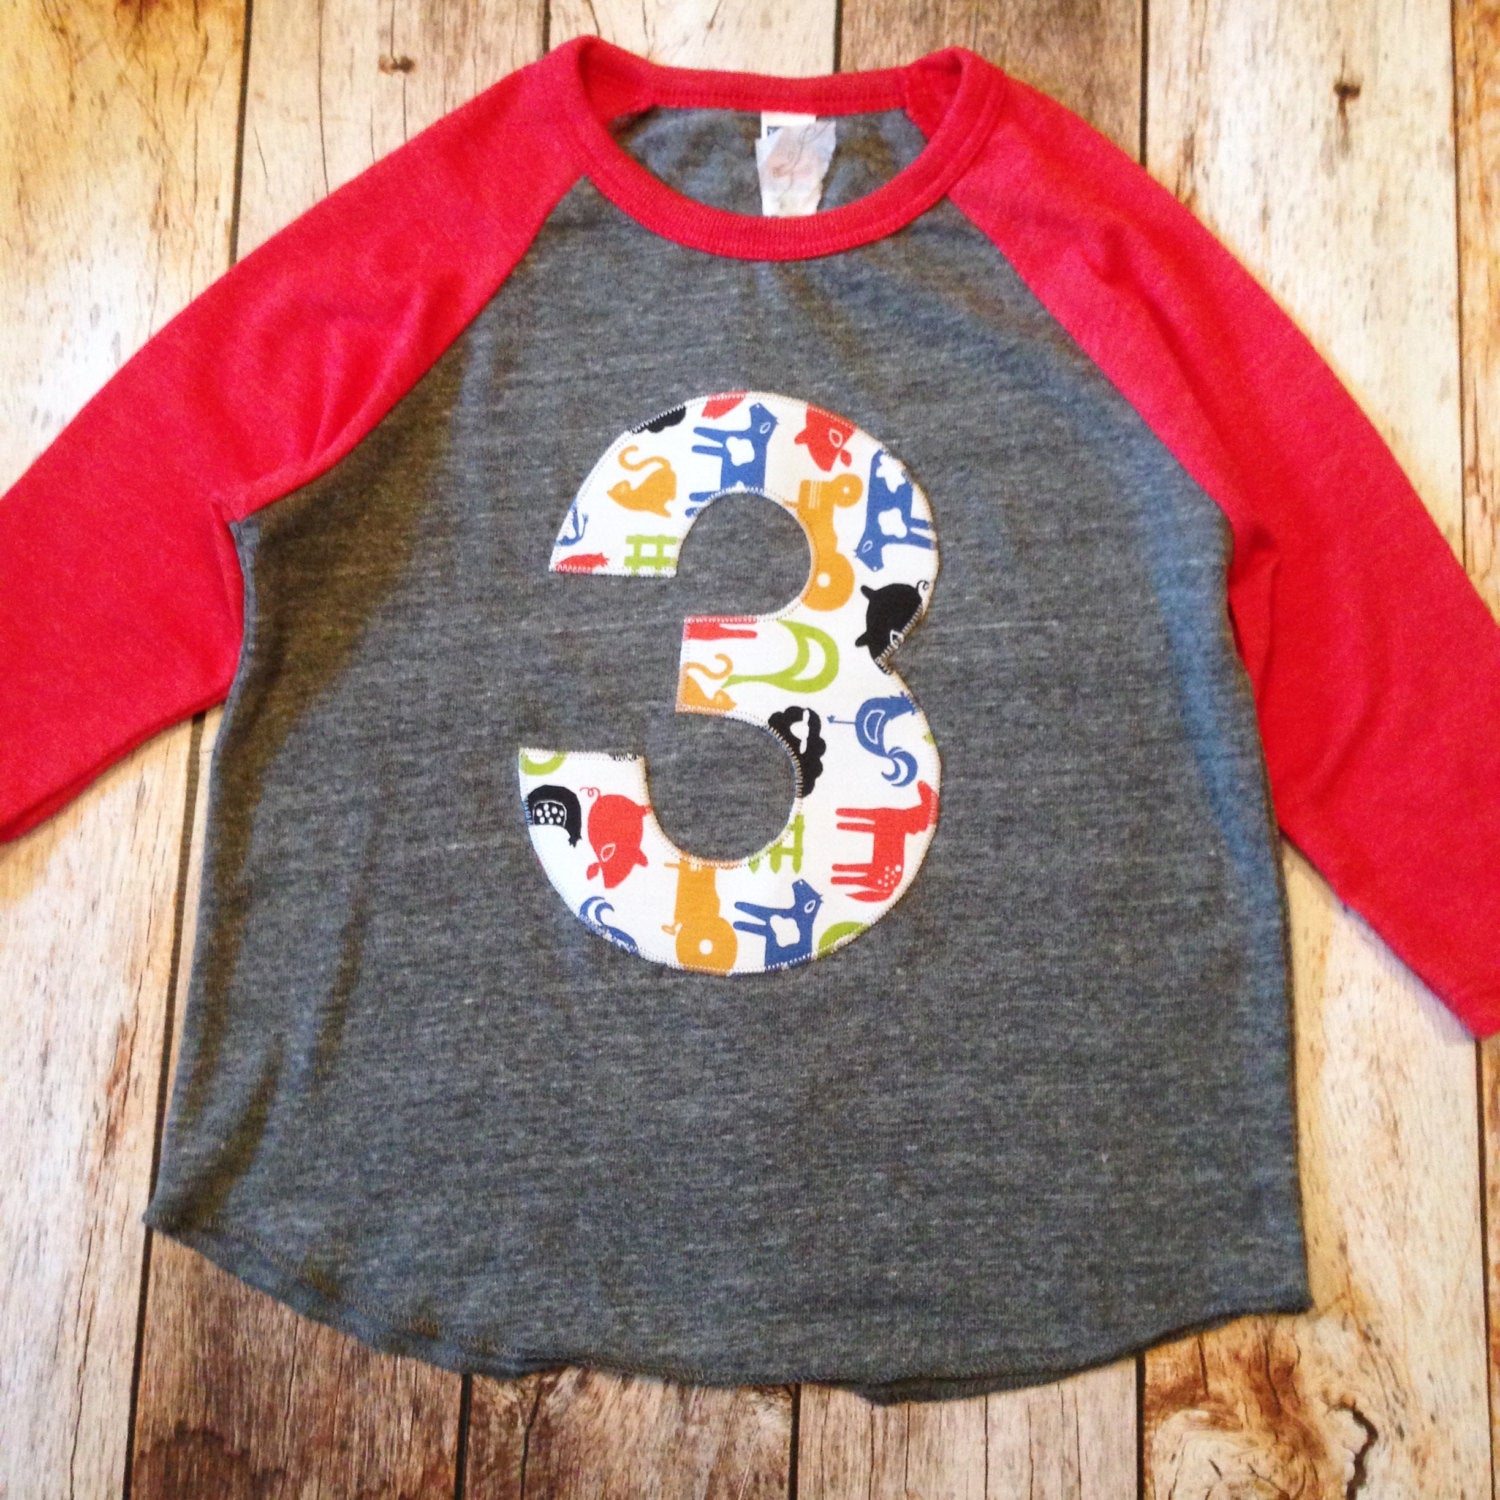 3 Farm Barn Birthday Shirt Eco Heathered Red Grey Boys 2 Old Cow Print Hide Bandana Horse Animal Tractor Two 2nd 1 4 5 6 7